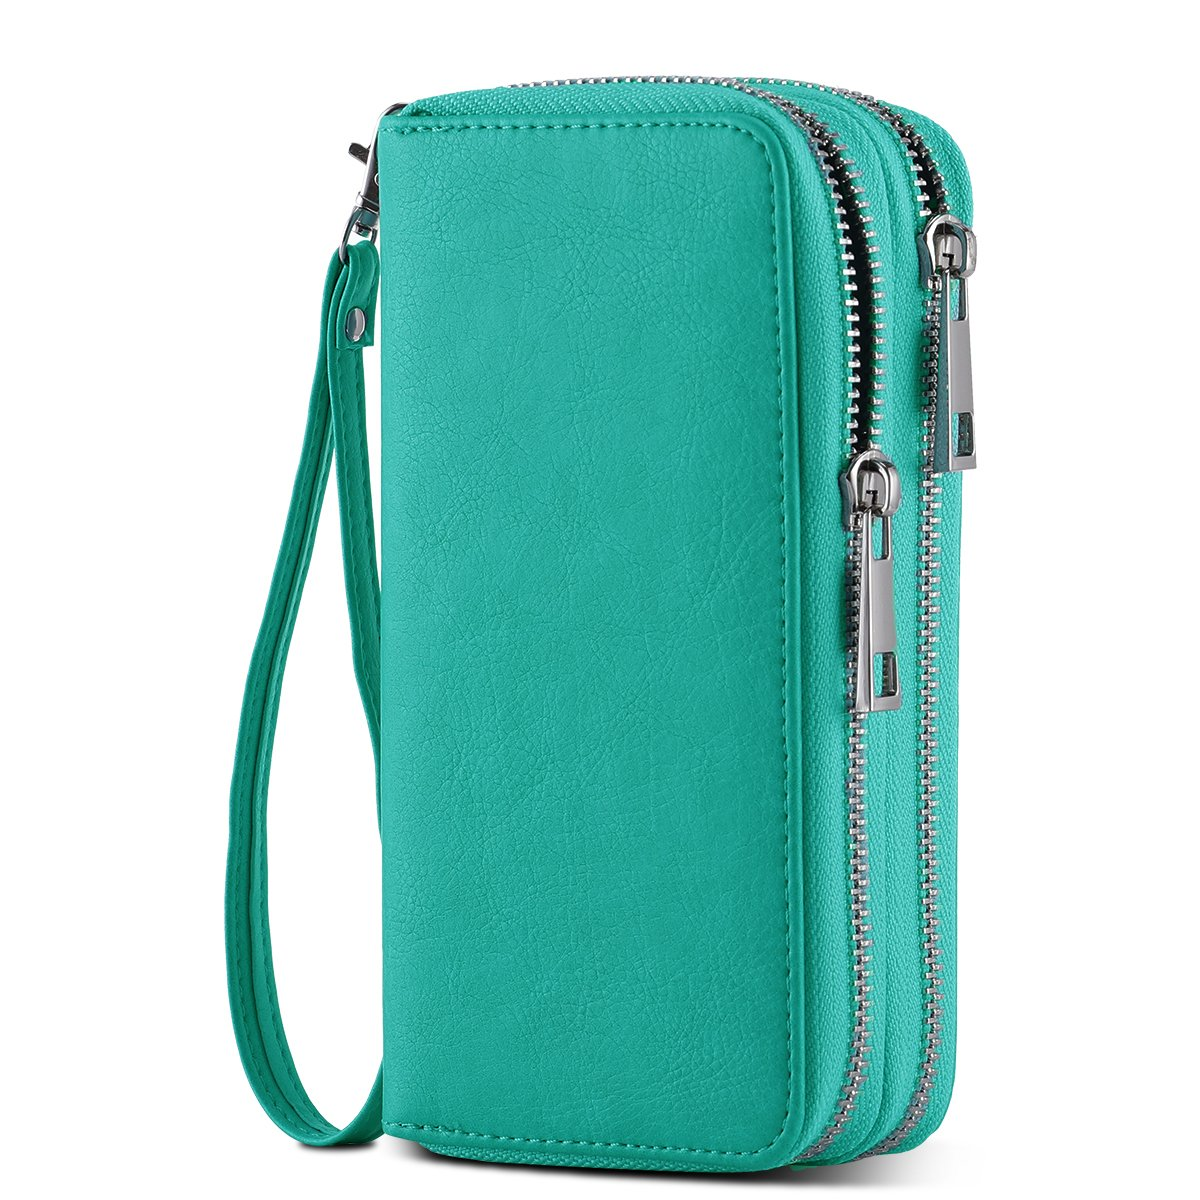 HAWEE Cellphone Wallet Dual Zipper Wristlet Purse with Credit Card Case//Coin Pouch//Smart Phone Pocket Soft Leather for Women or Lady Honor Peony